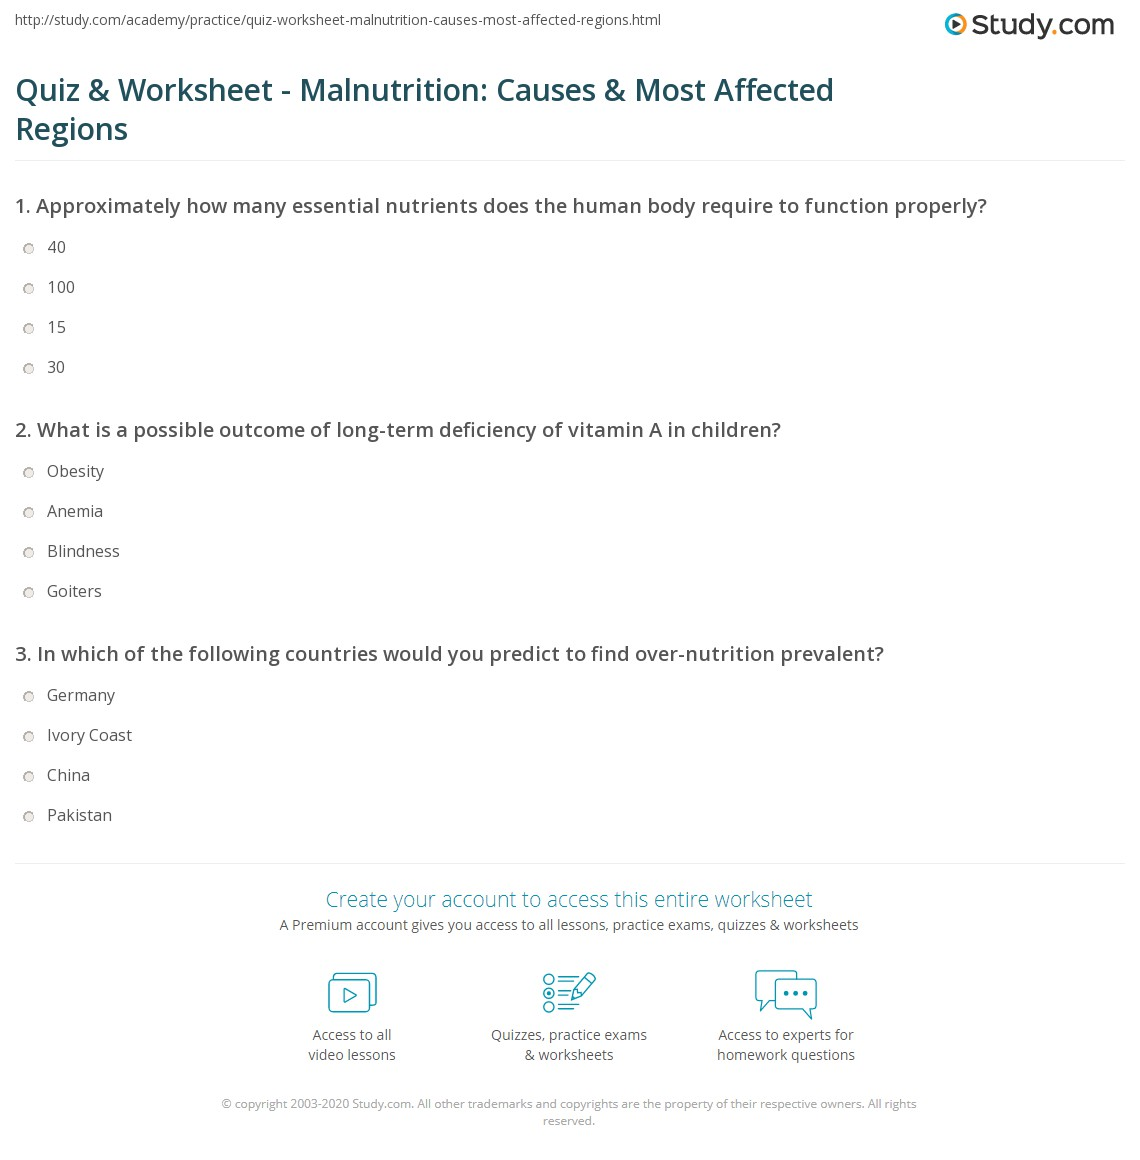 Print Malnutrition Causes Of Over Nutrition And Under Nutrition Most Affected Regions Worksheet